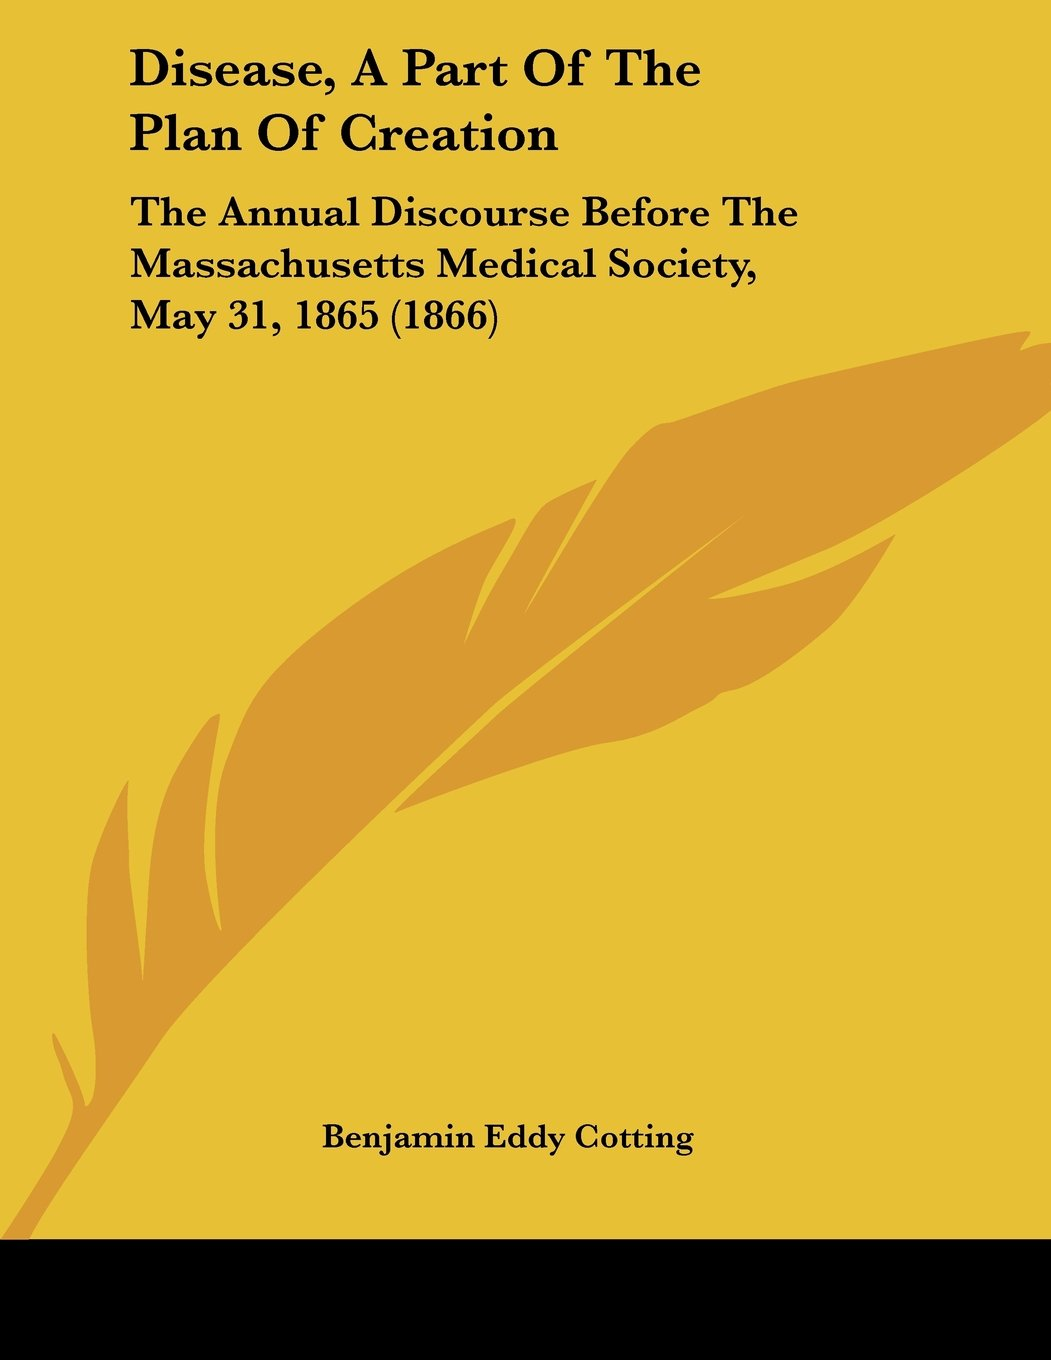 Download Disease, A Part Of The Plan Of Creation: The Annual Discourse Before The Massachusetts Medical Society, May 31, 1865 (1866) pdf epub